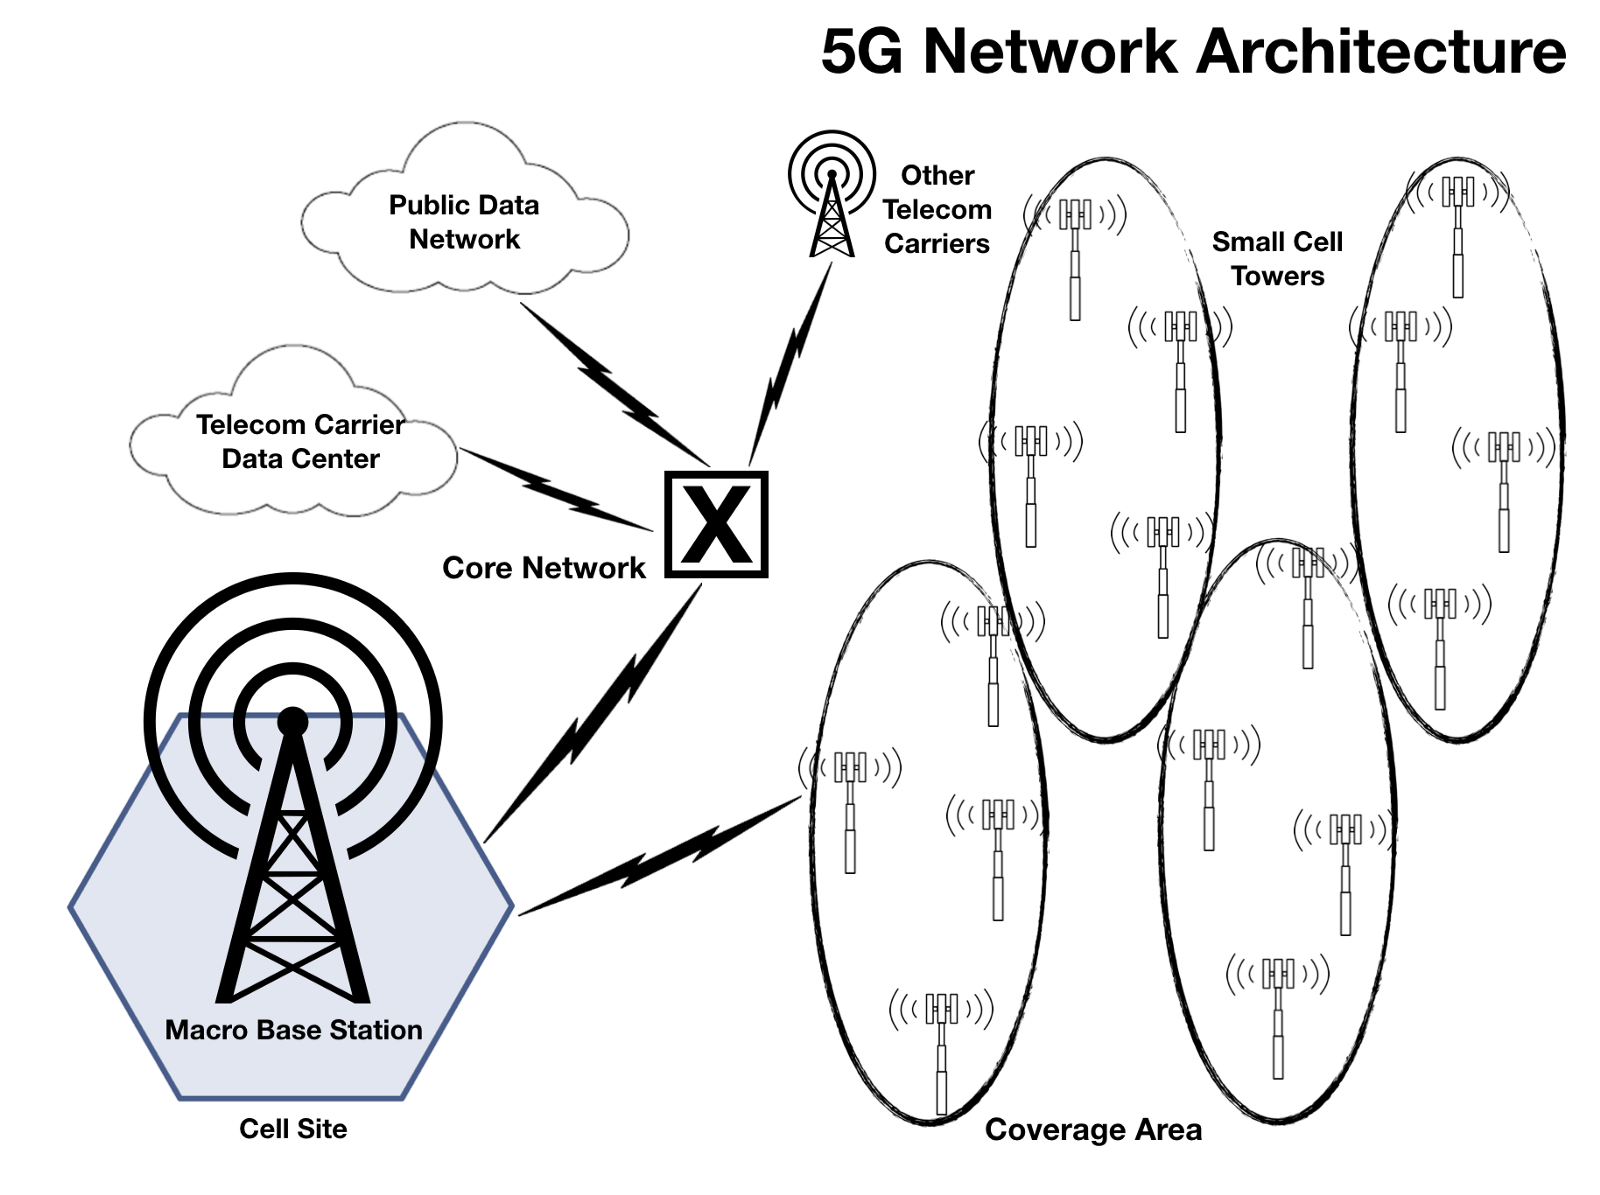 5G Networks Can Change The Way We Live: For Better or Worse